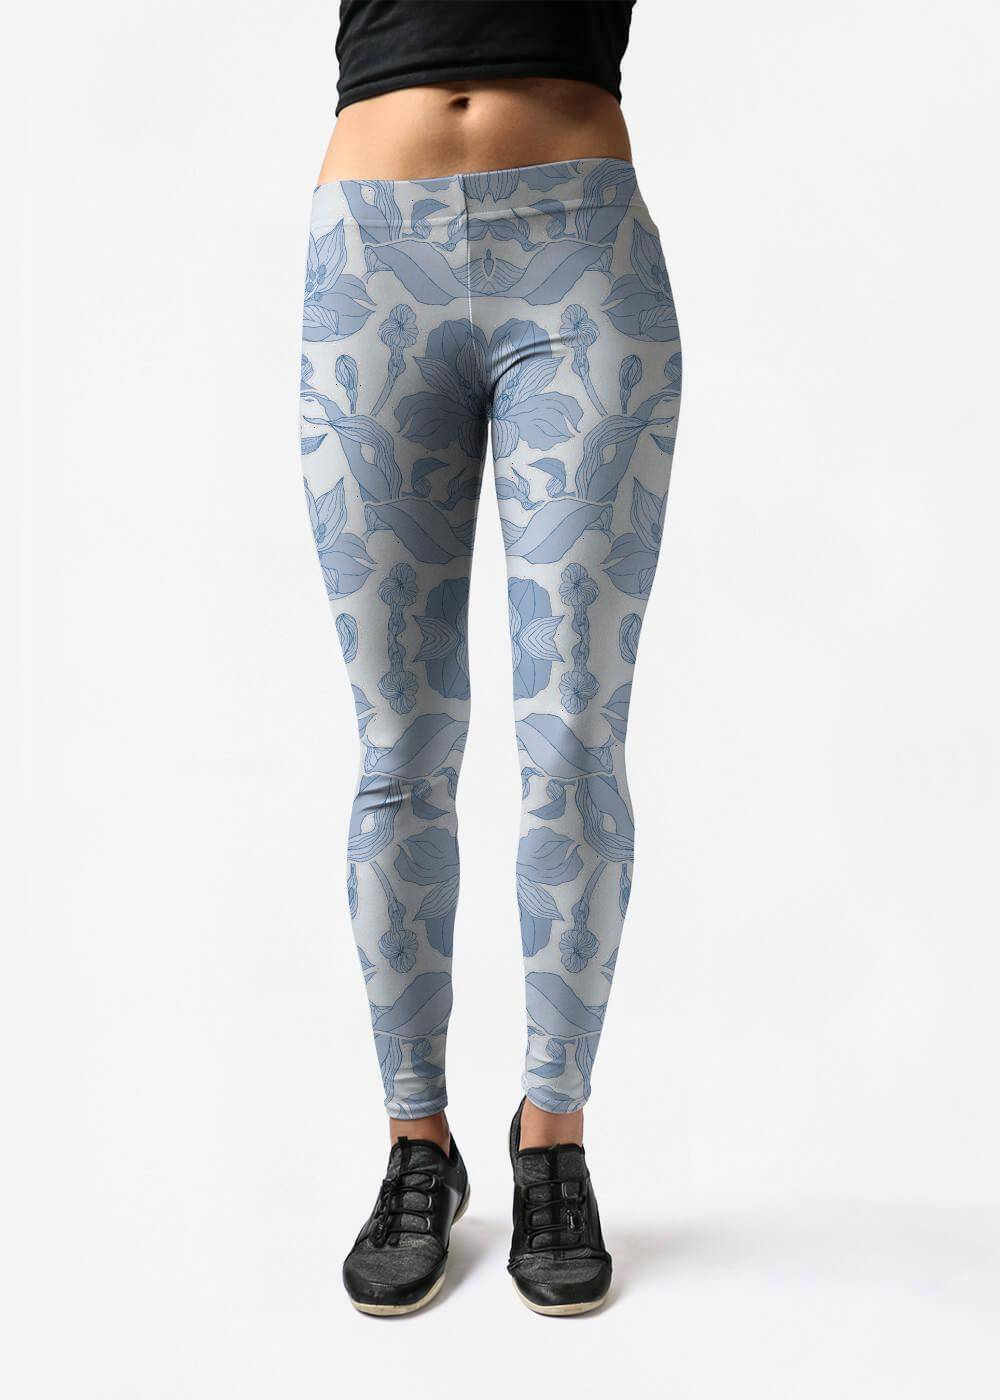 VIDA Leggings - Exotic Blue Garden by VIDA Original Artist  - Size: Large